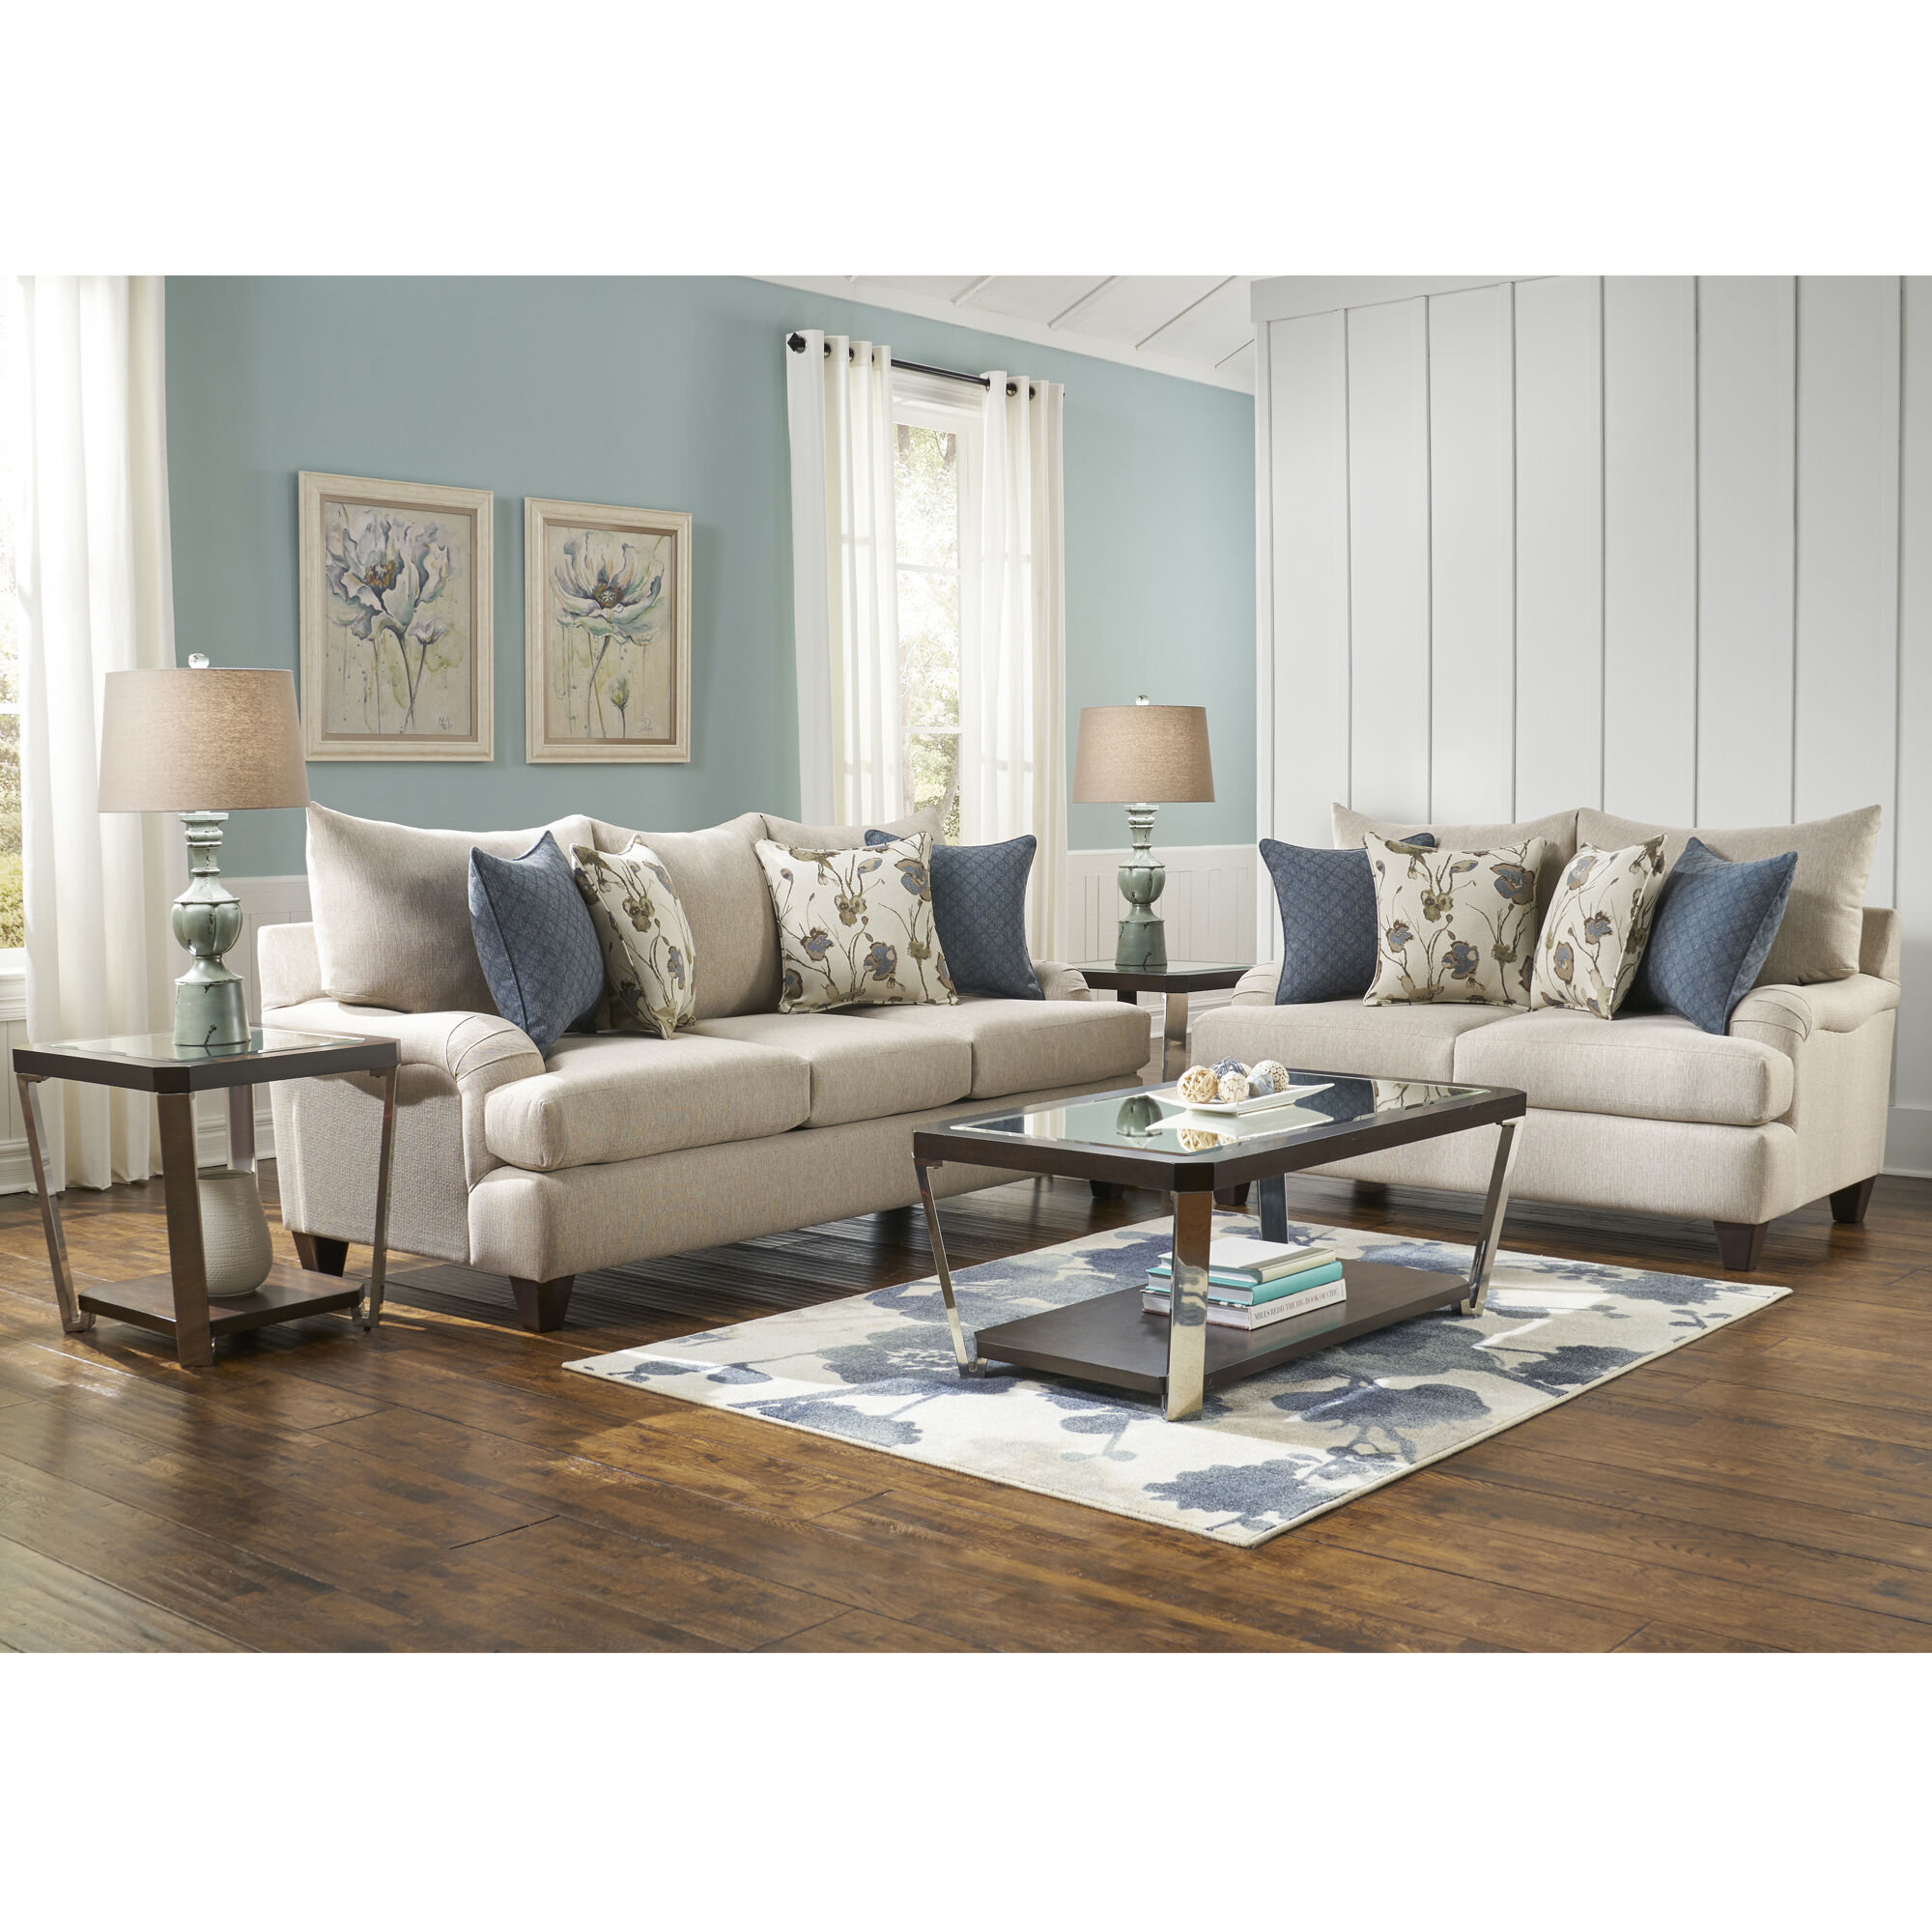 3 Piece Vogue Living Room Collection